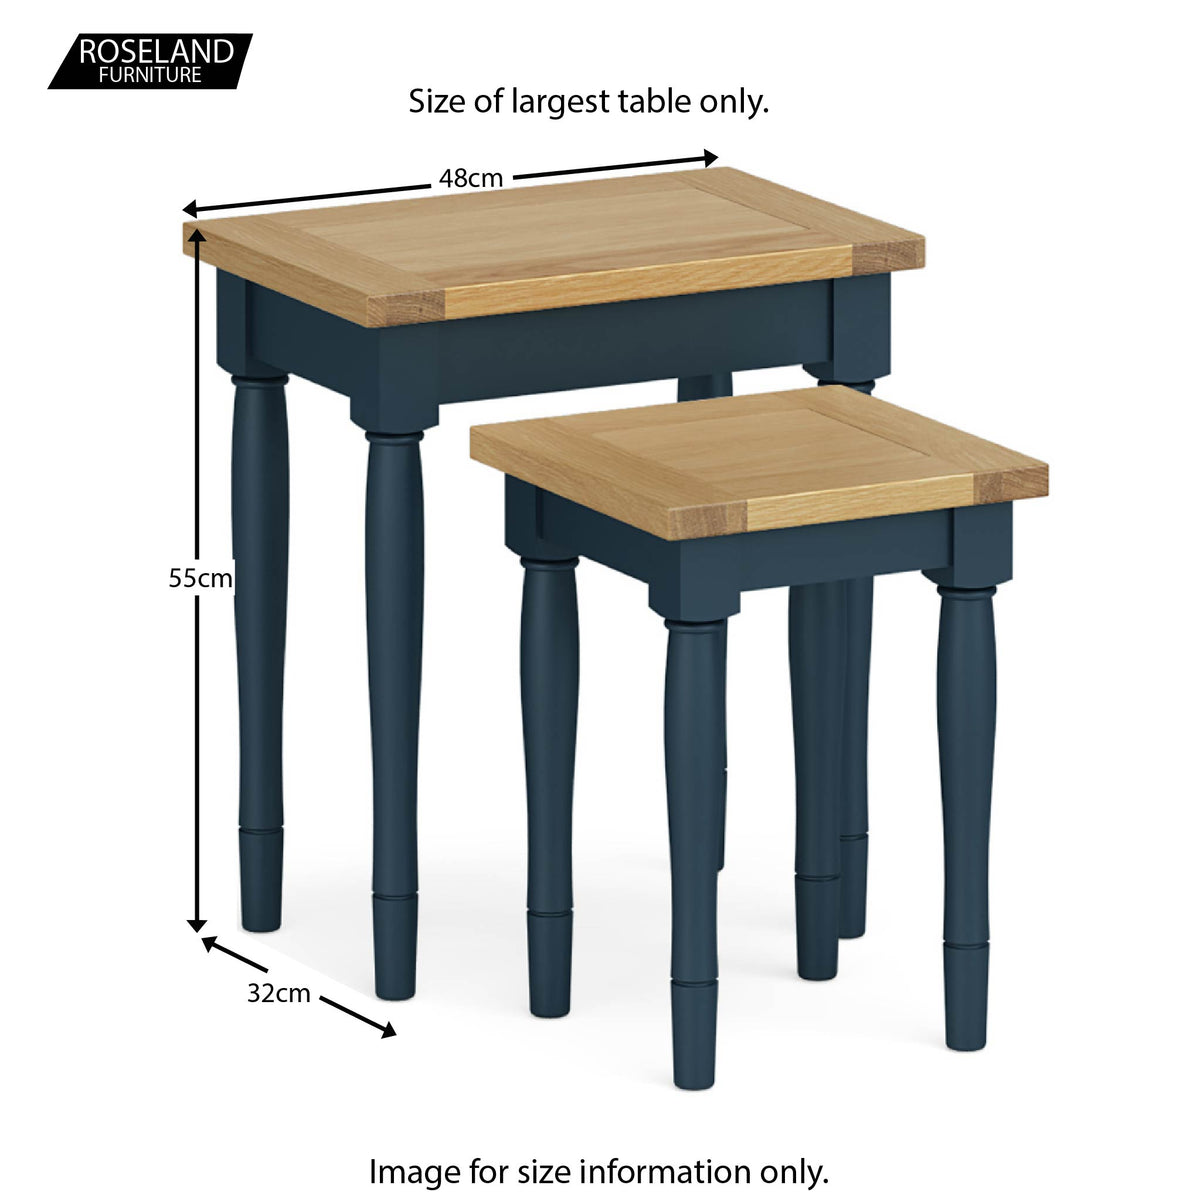 Chichester Nest of Tables in Stifkey Blue - Size Guide